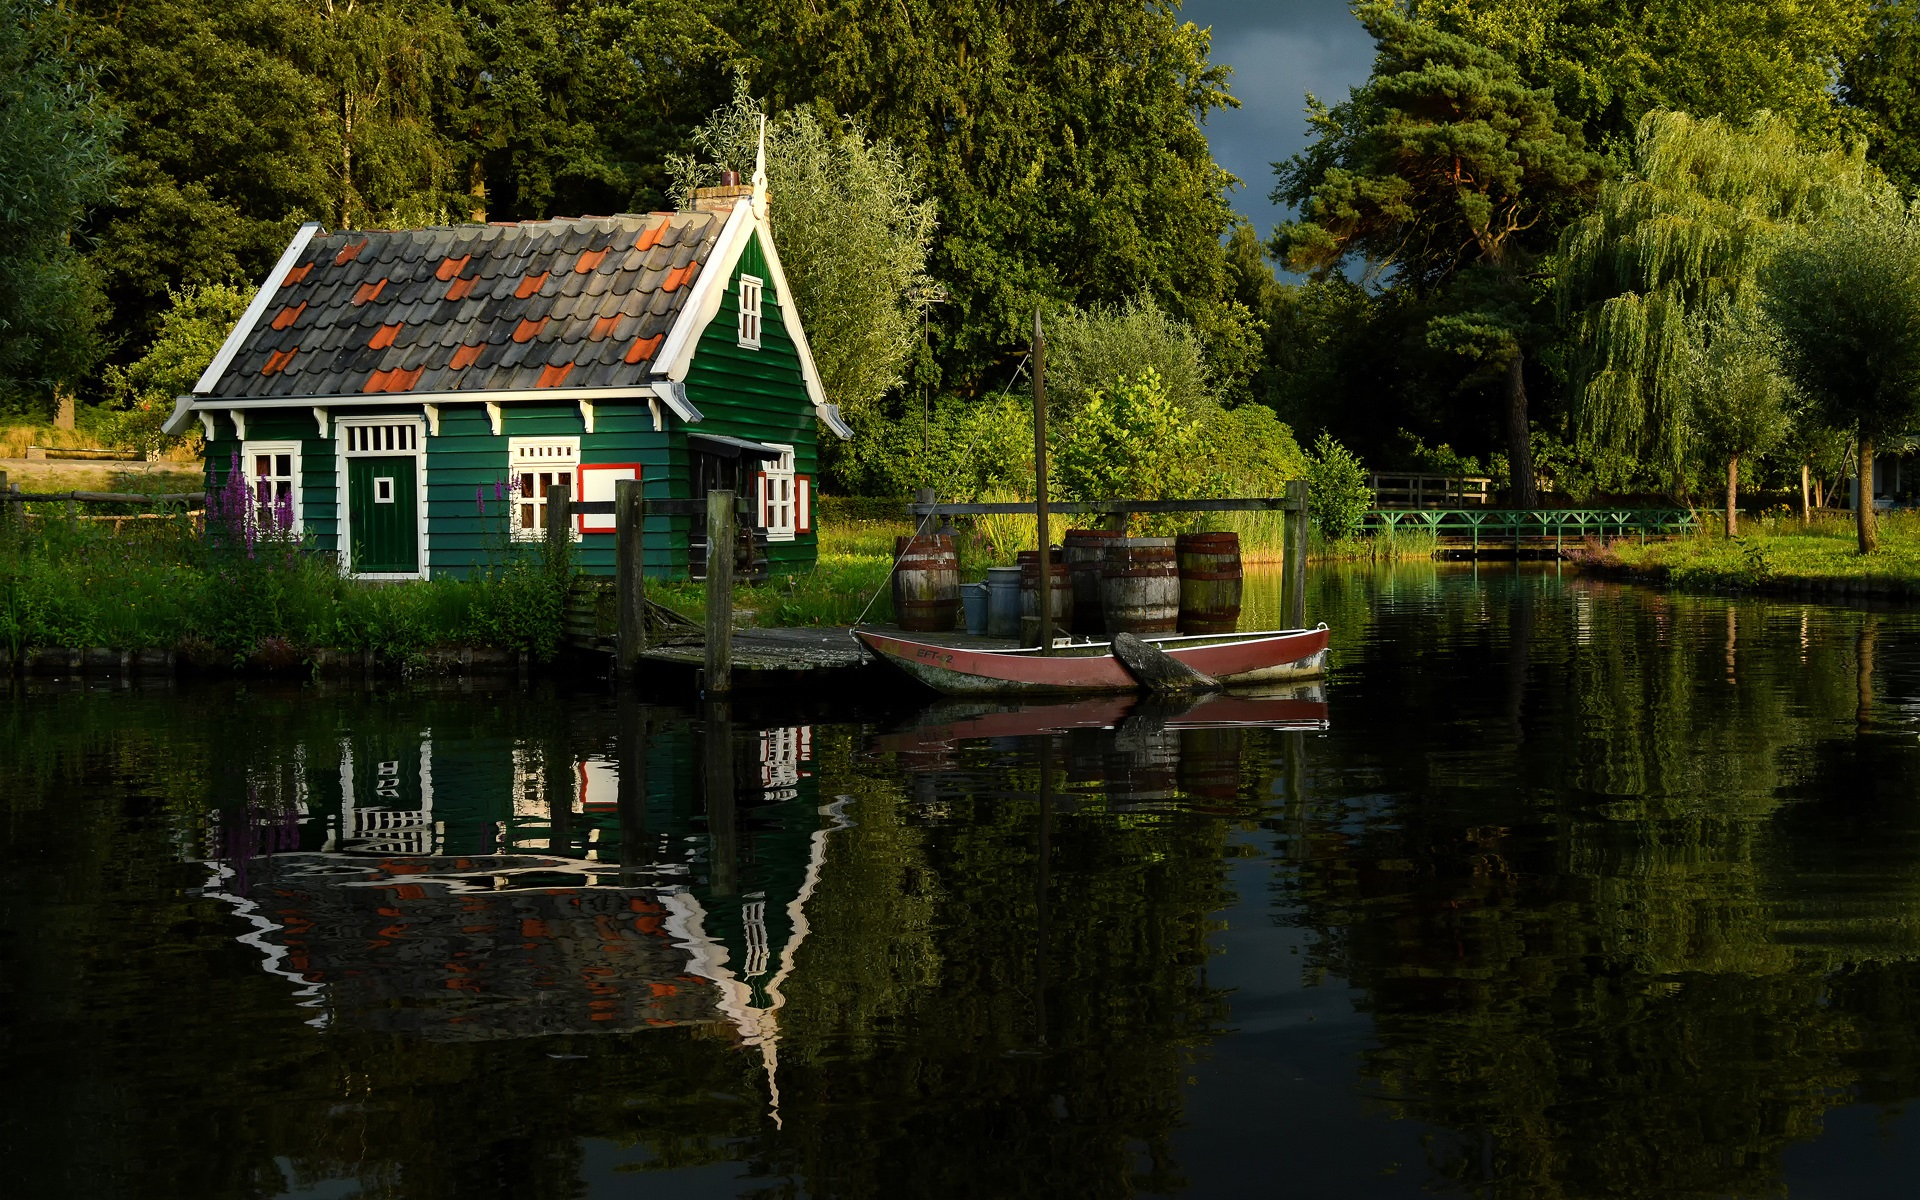 Sommer b ume fluss teich park holzhaus steg boot hintergrundbilder 1920x1200 - The pond house nature above all ...